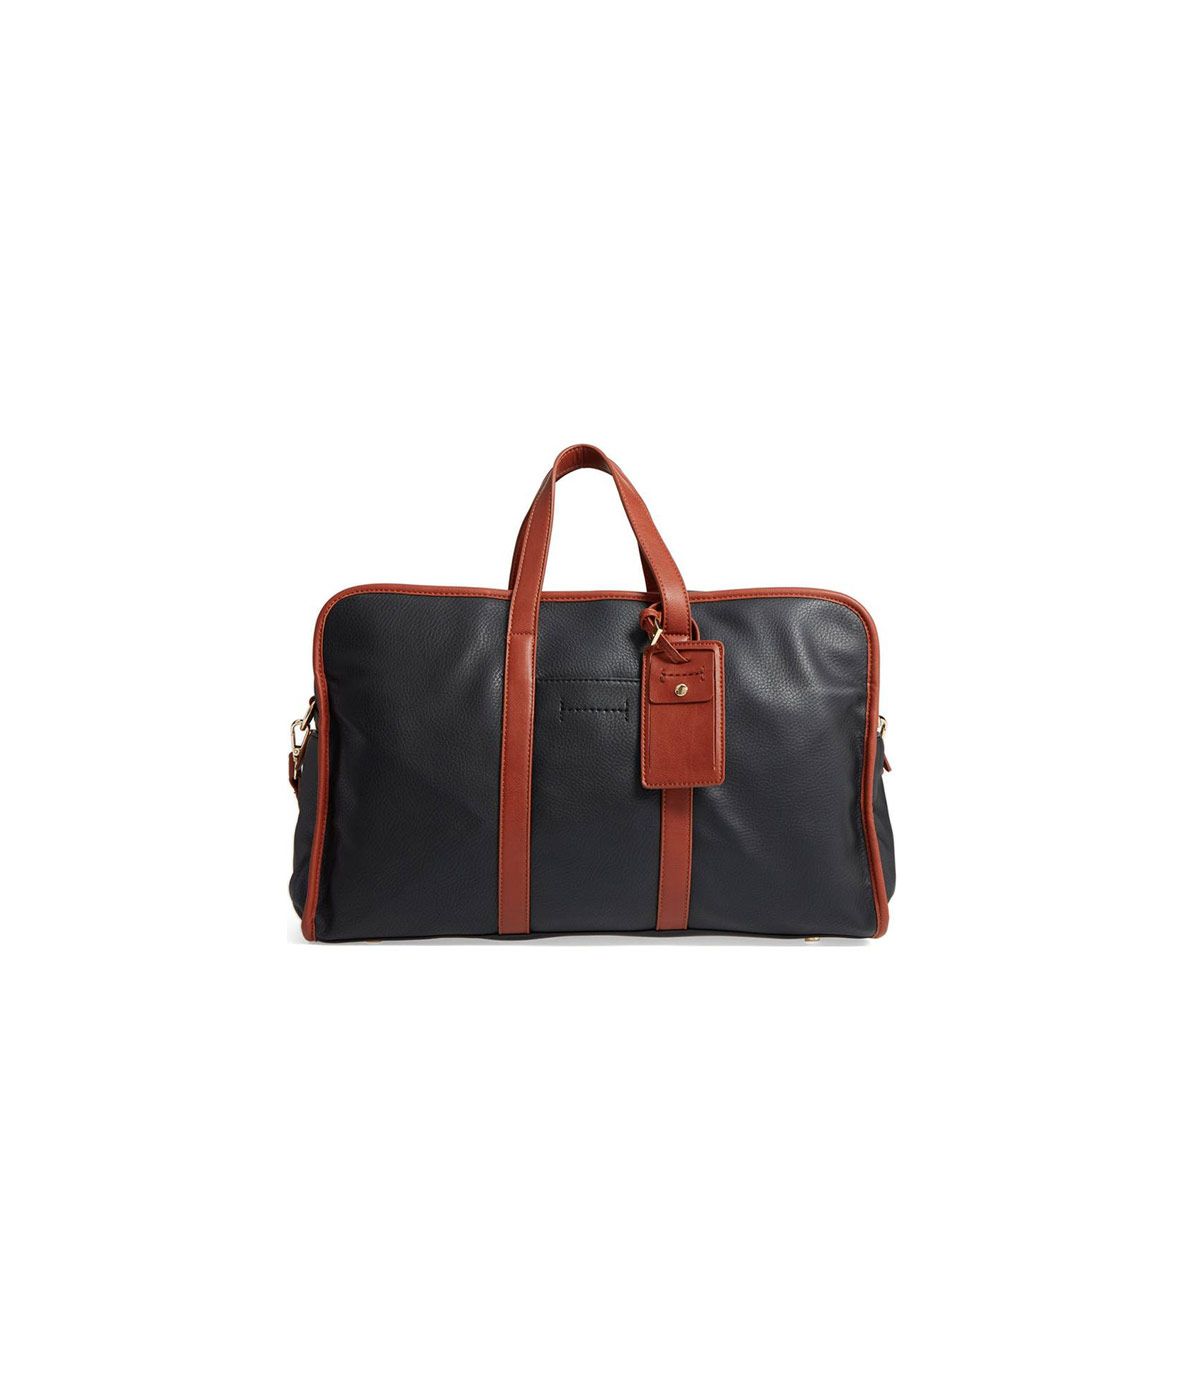 Doxin Faux Leather Duffel Bag